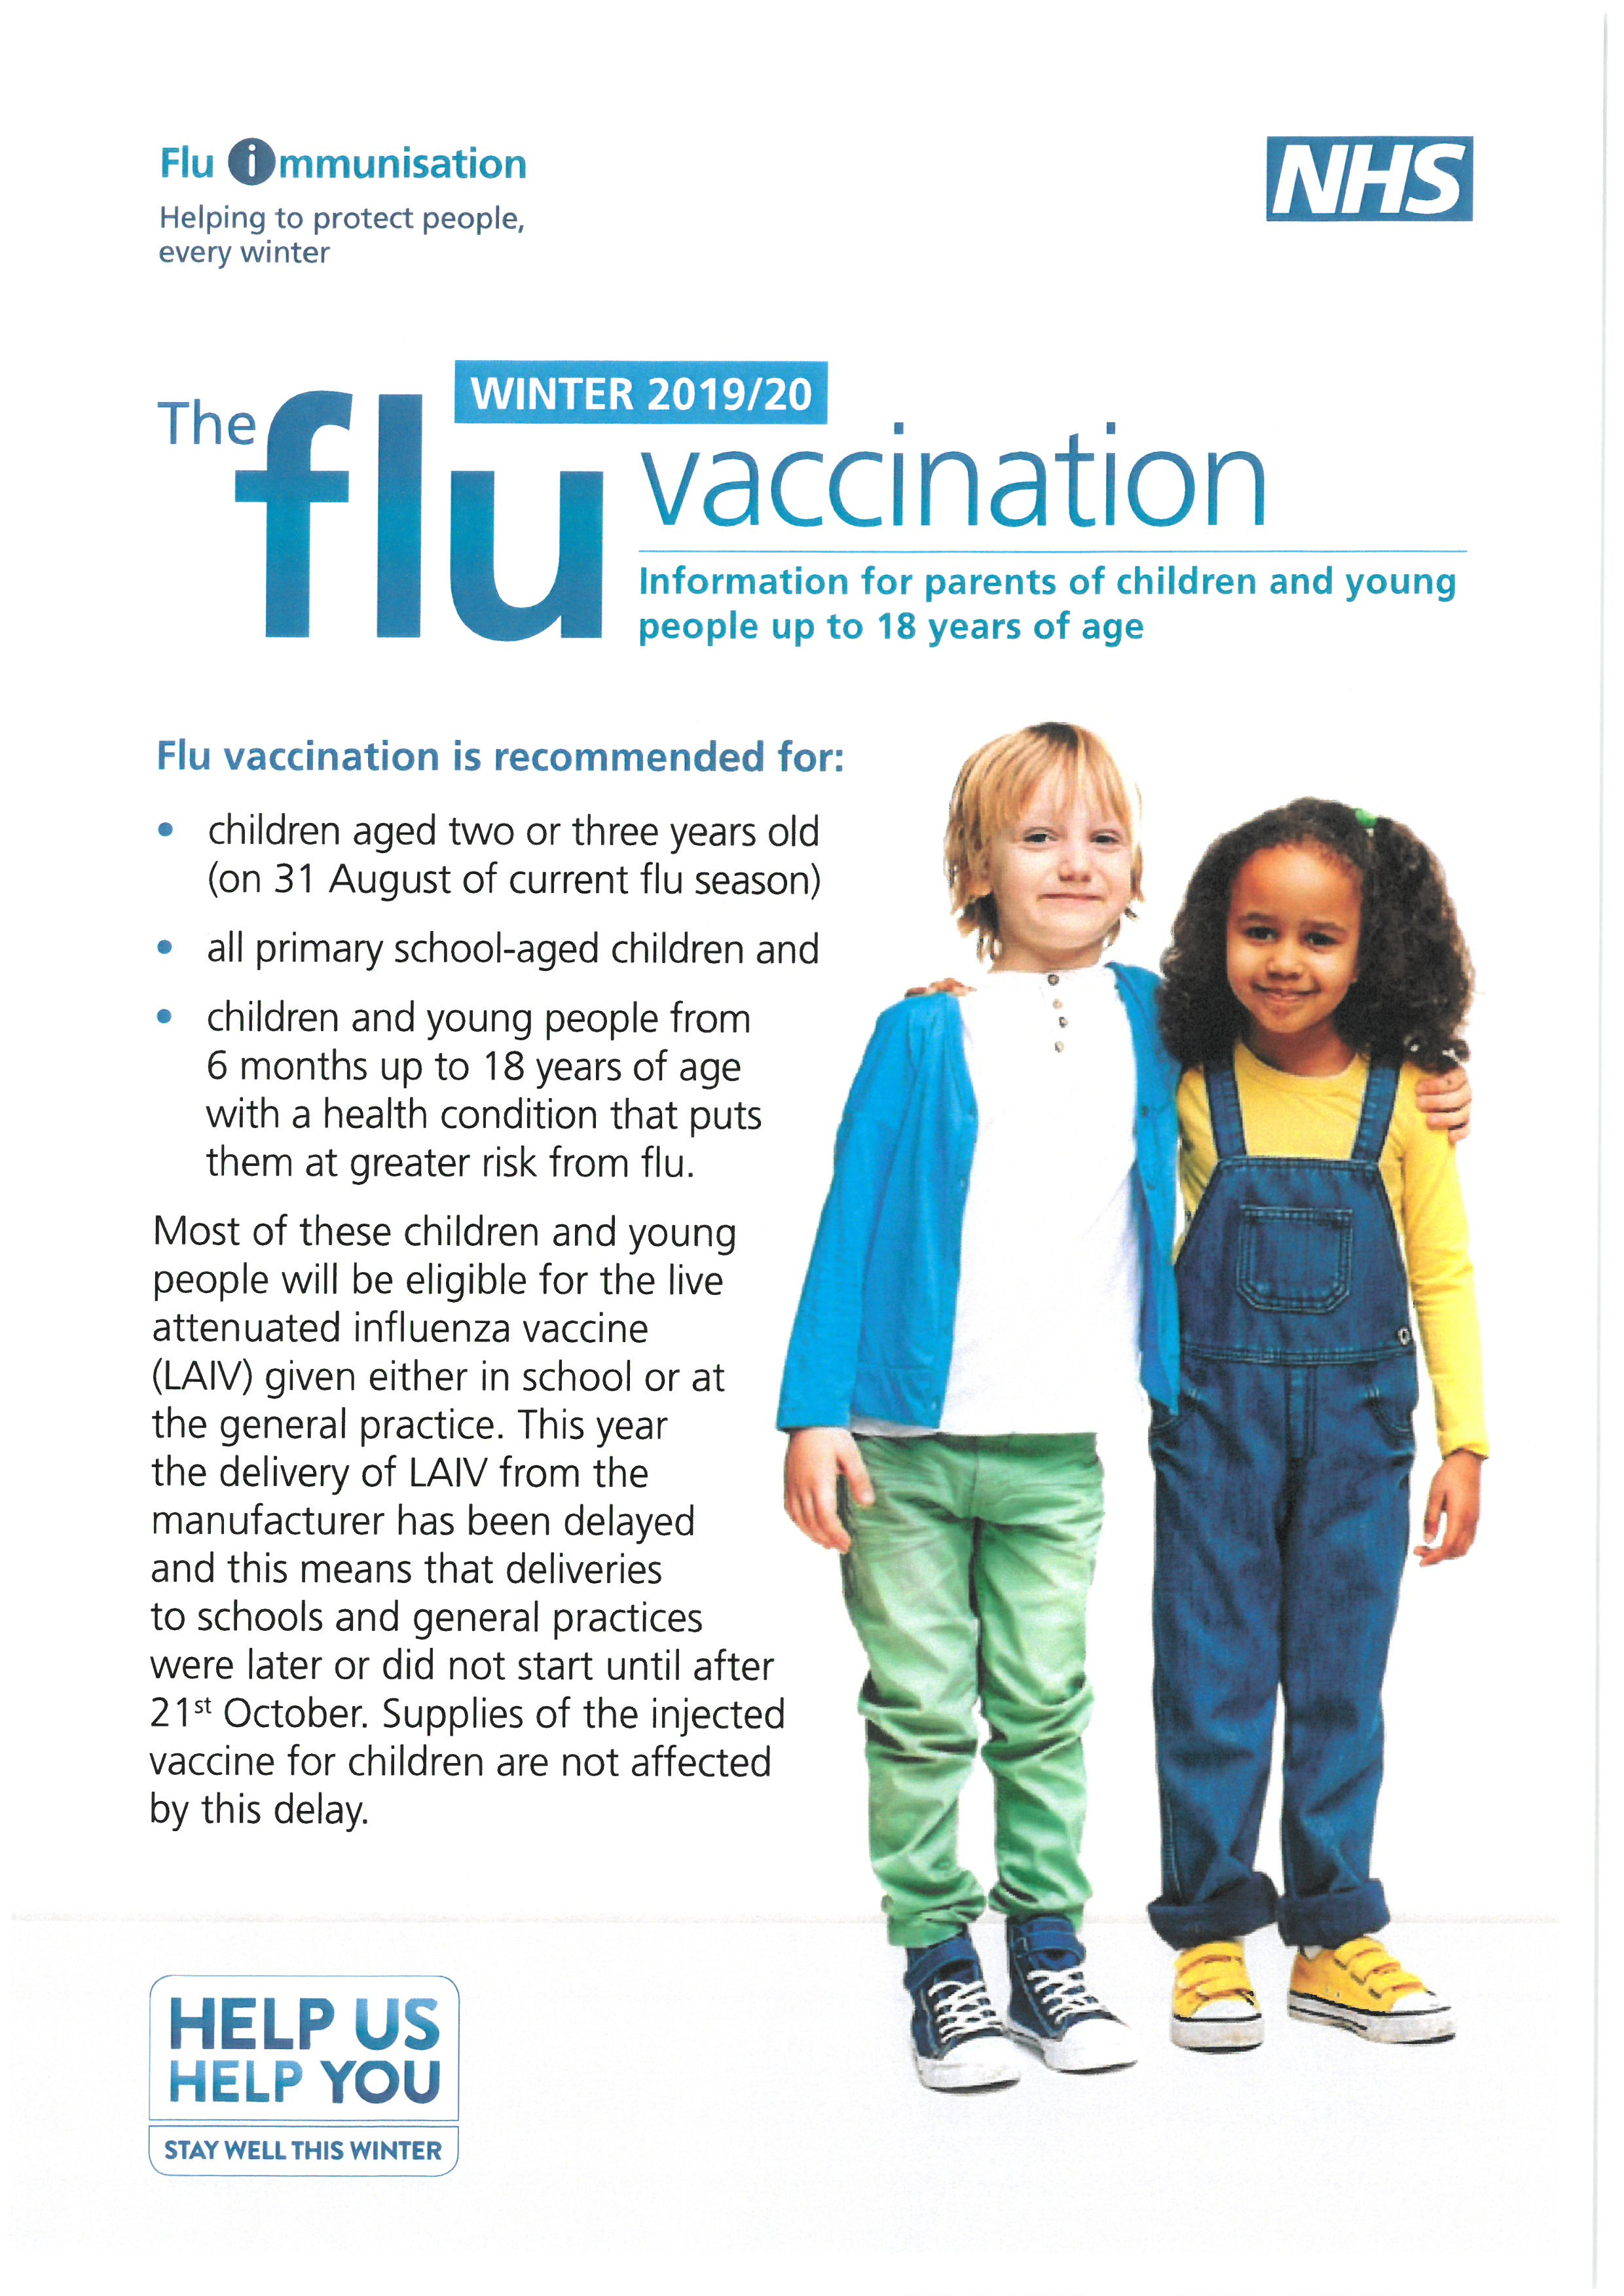 Child Flu Vaccination Information